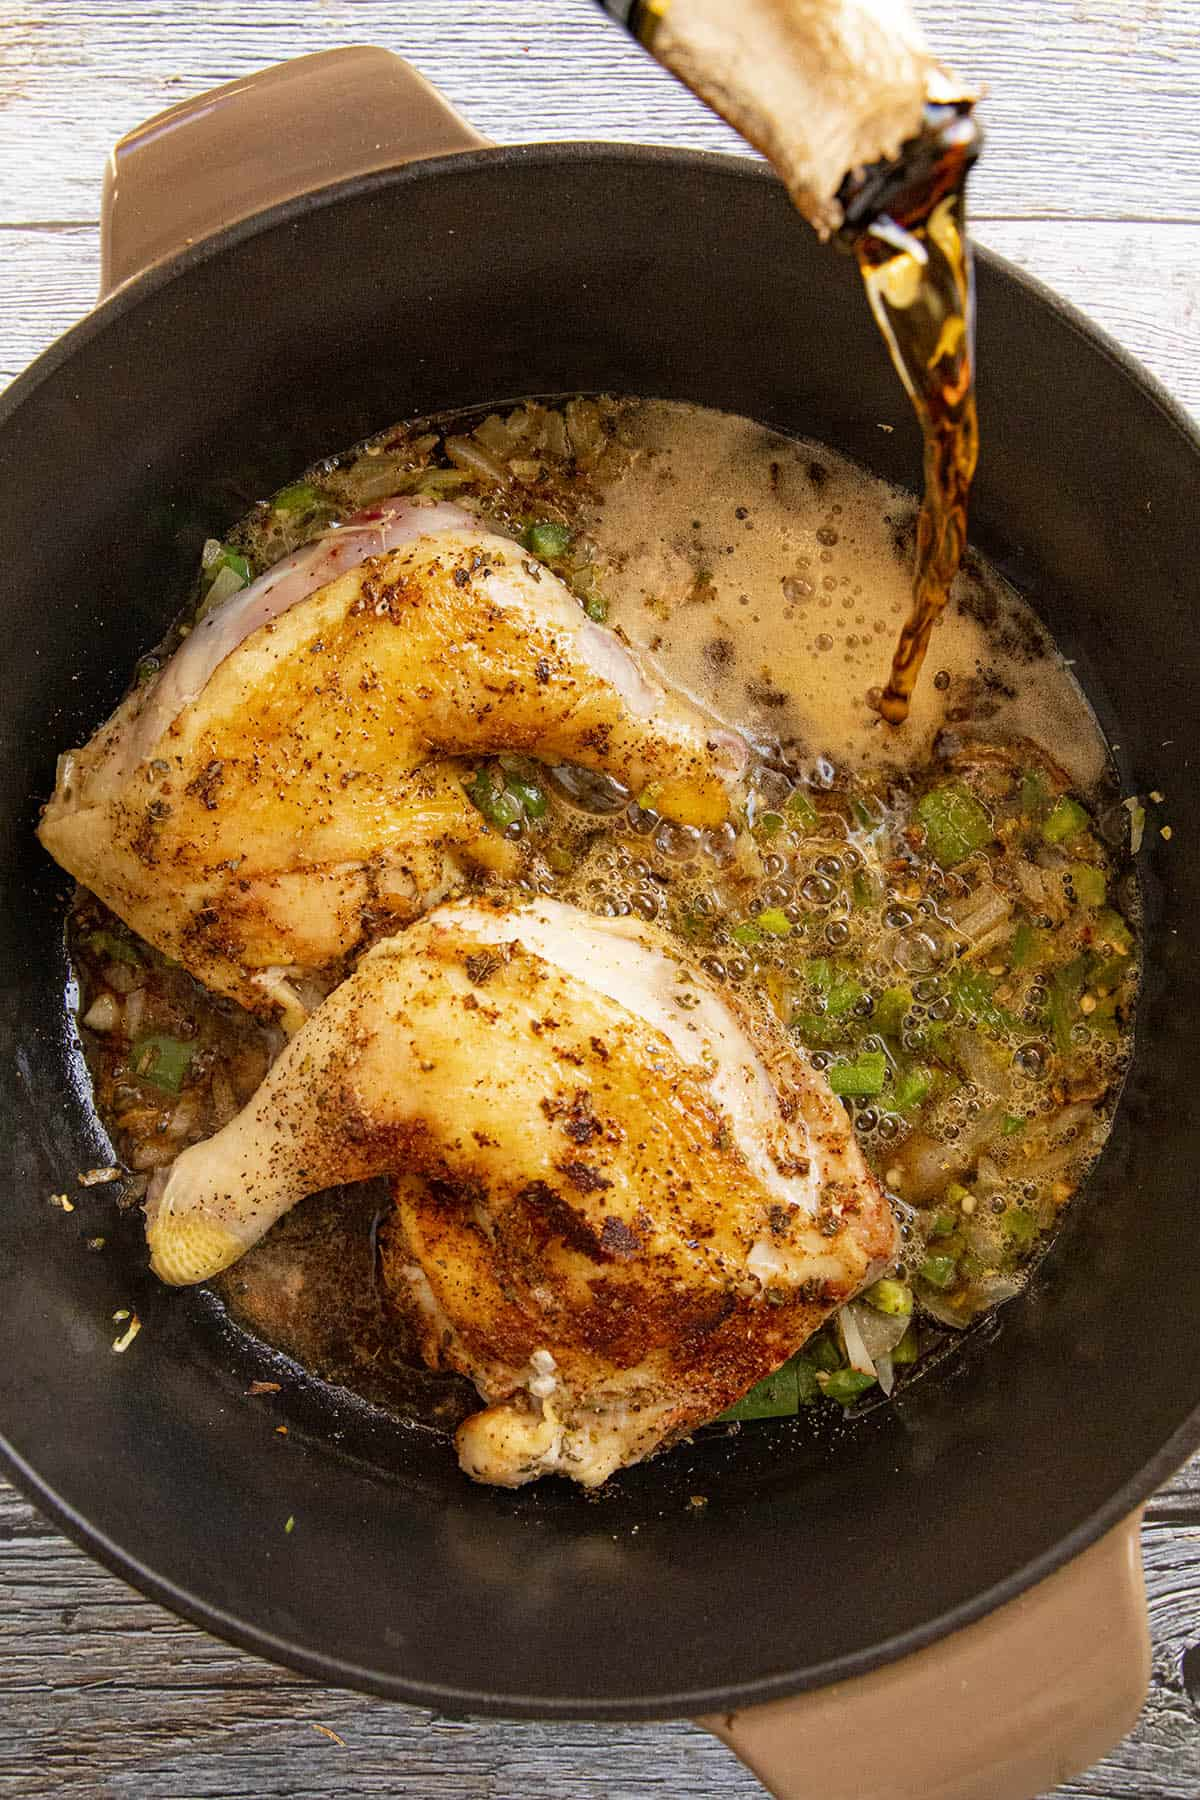 Adding liquid to the pan to braise the chicken